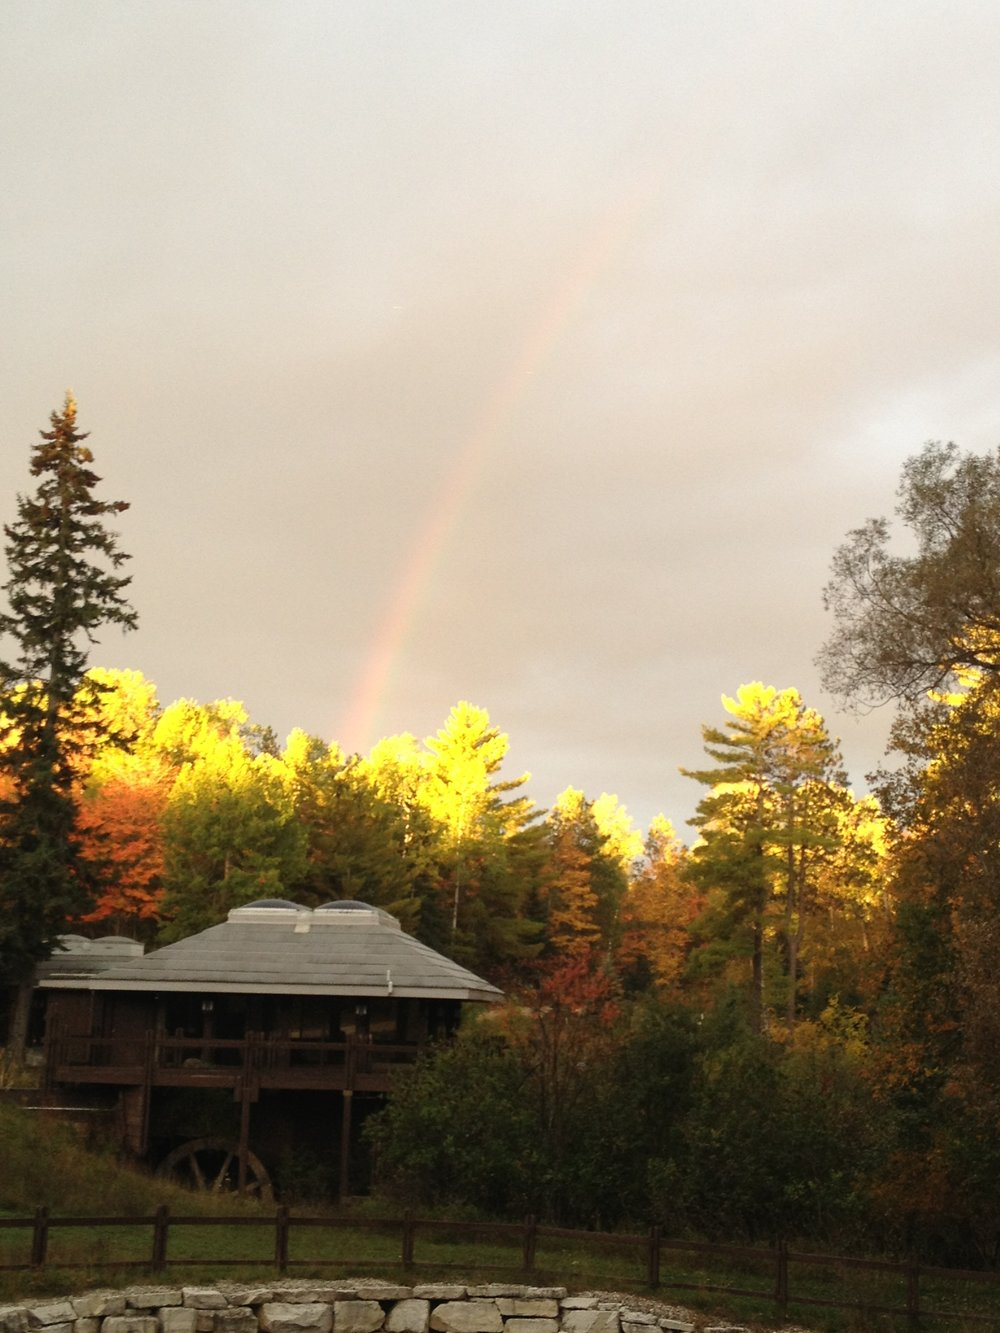 Wheelhouse with rainbow in autumn.jpg